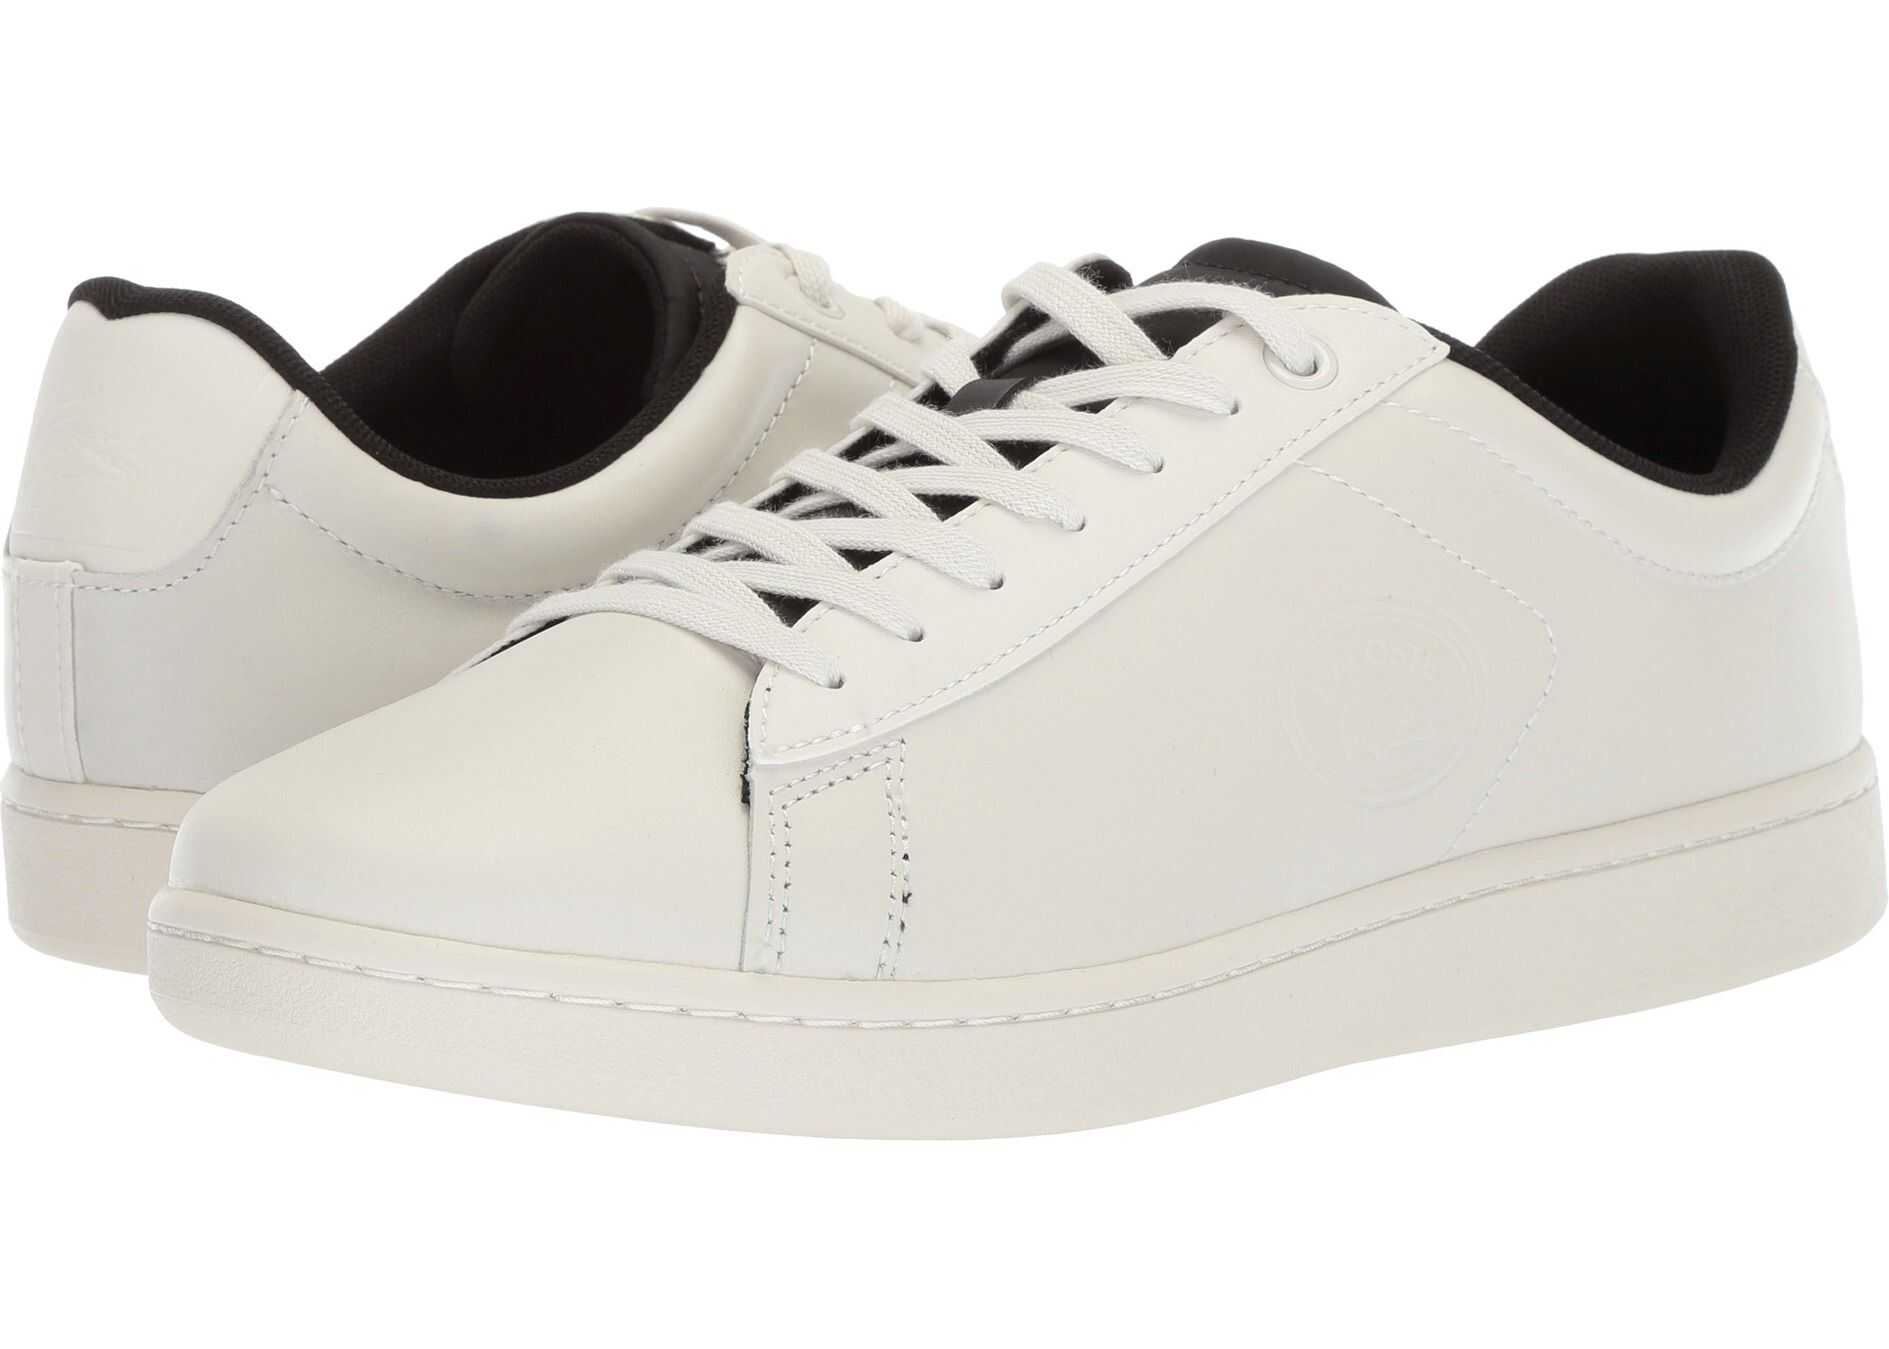 Lacoste Carnaby Evo 418 2 Off-White/Black